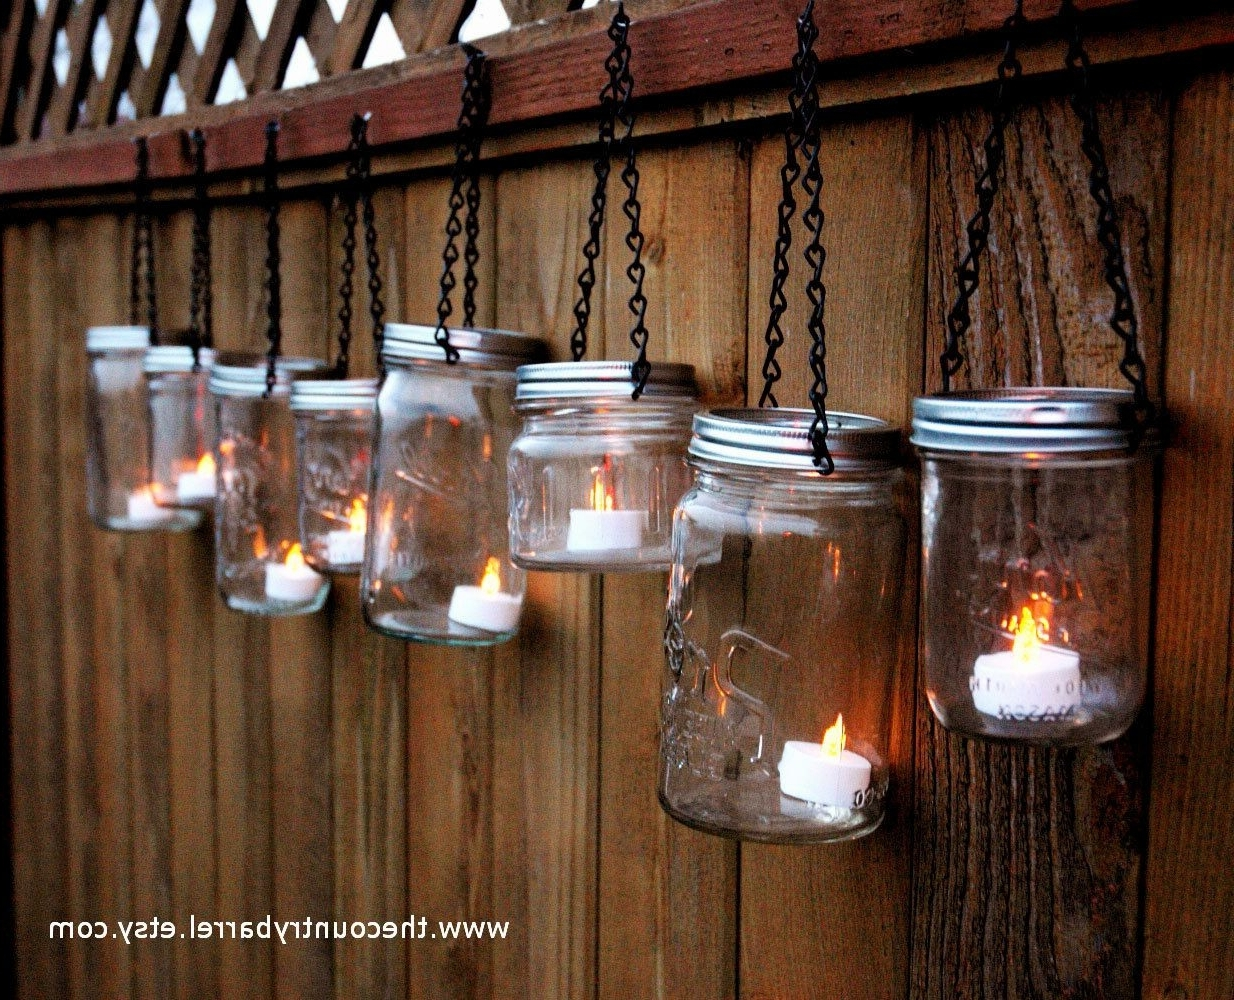 Famous Outdoor Hanging Tea Lights In Mason Jar Lanterns Hanging Tea Lightthecountrybarrel On Etsy (View 3 of 20)